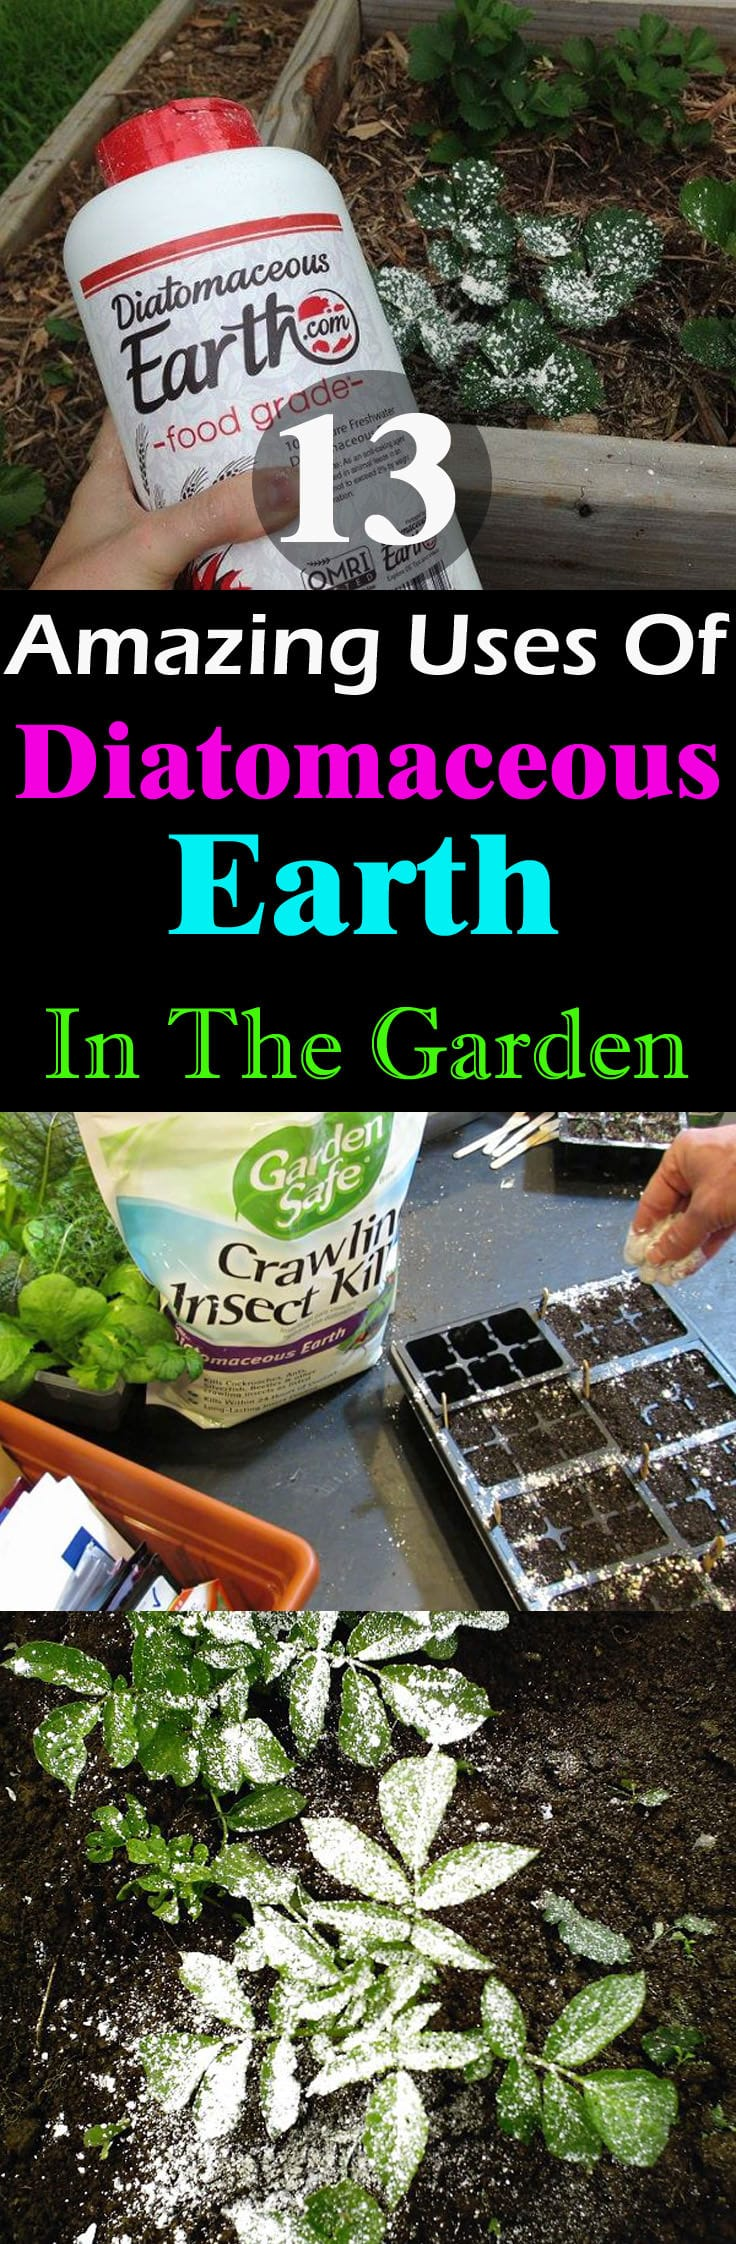 This naturally occurring substance can be used for so many things in the garden. Must check out these 13 Diatomaceous Earth Uses to learn more!